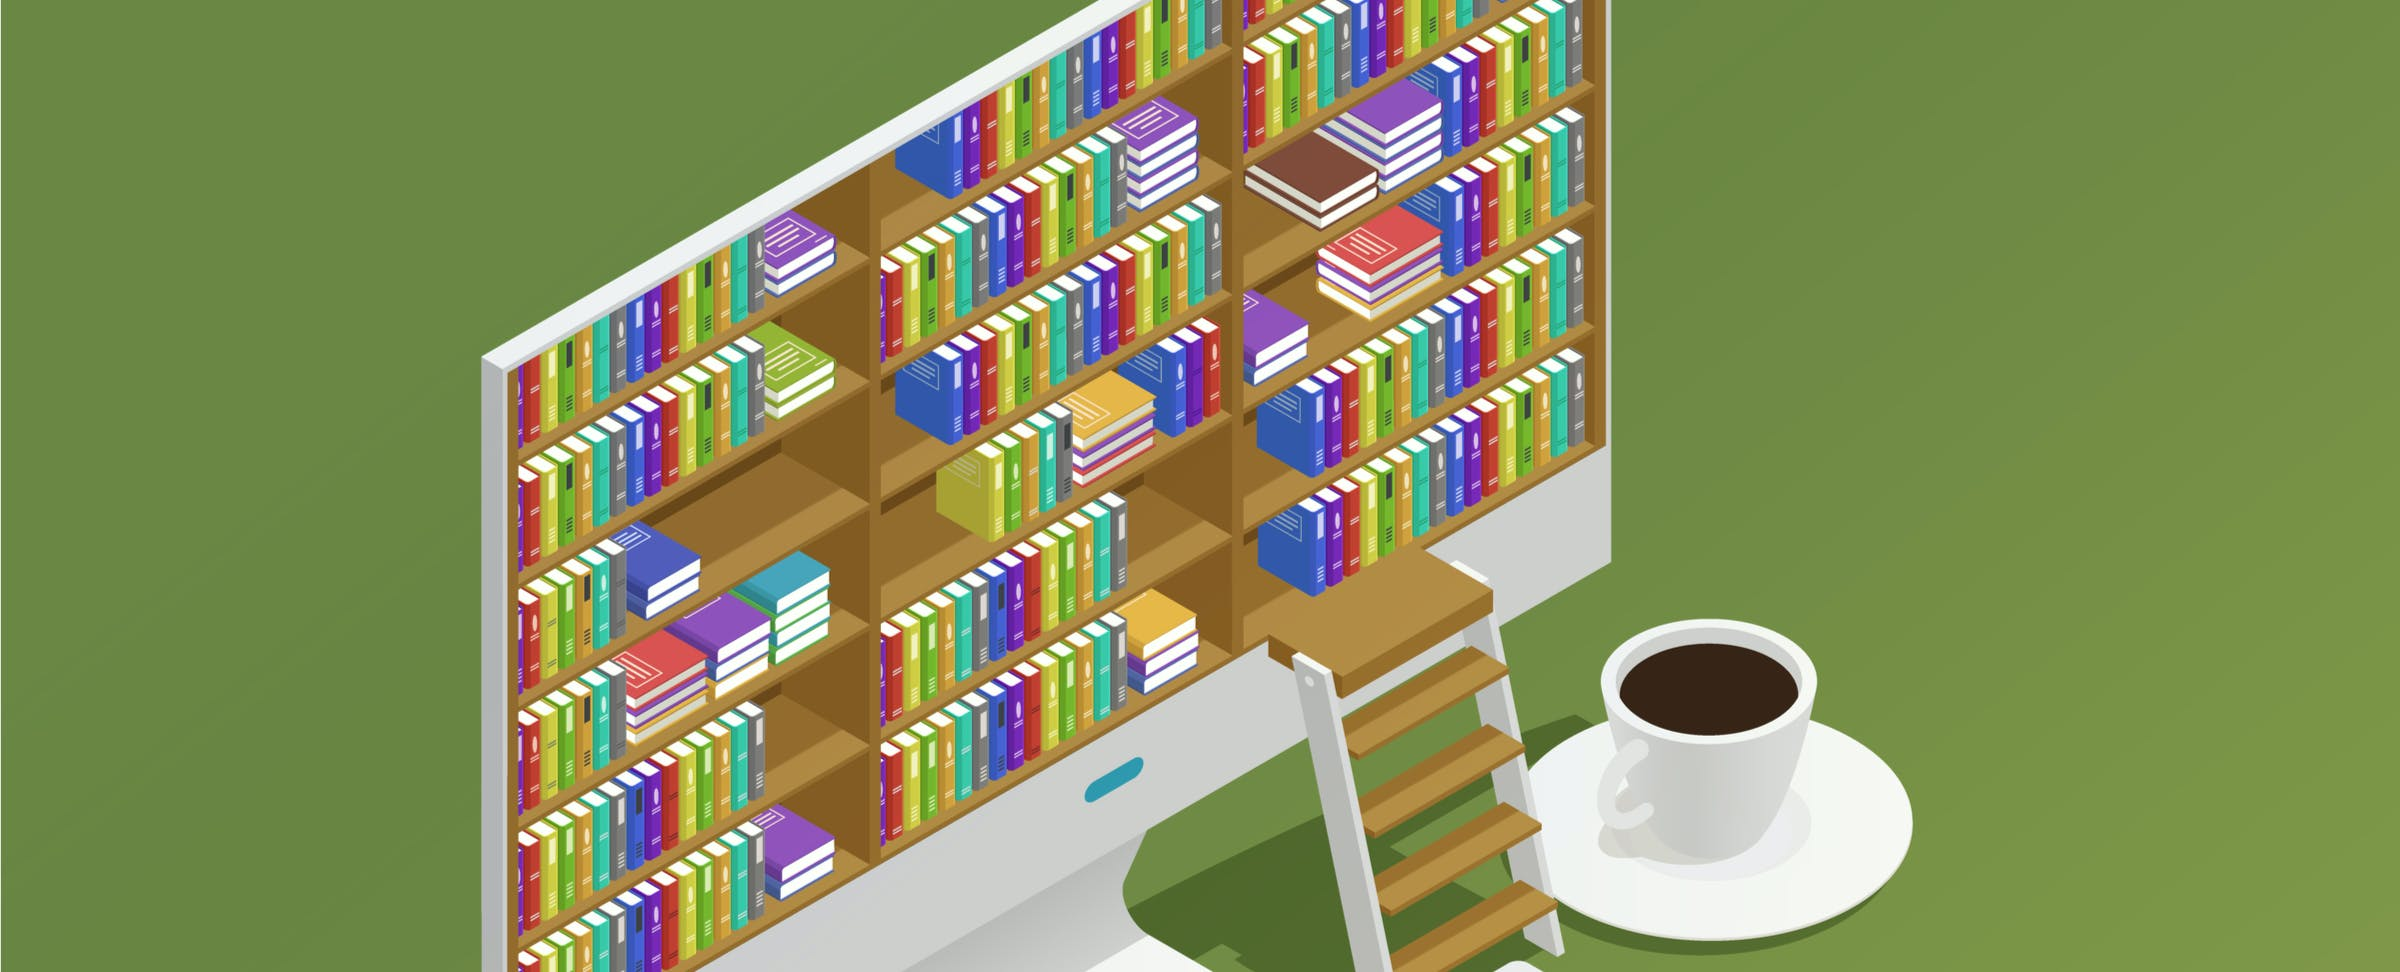 Blockchain in the Library? Researchers Explore Potential Applications